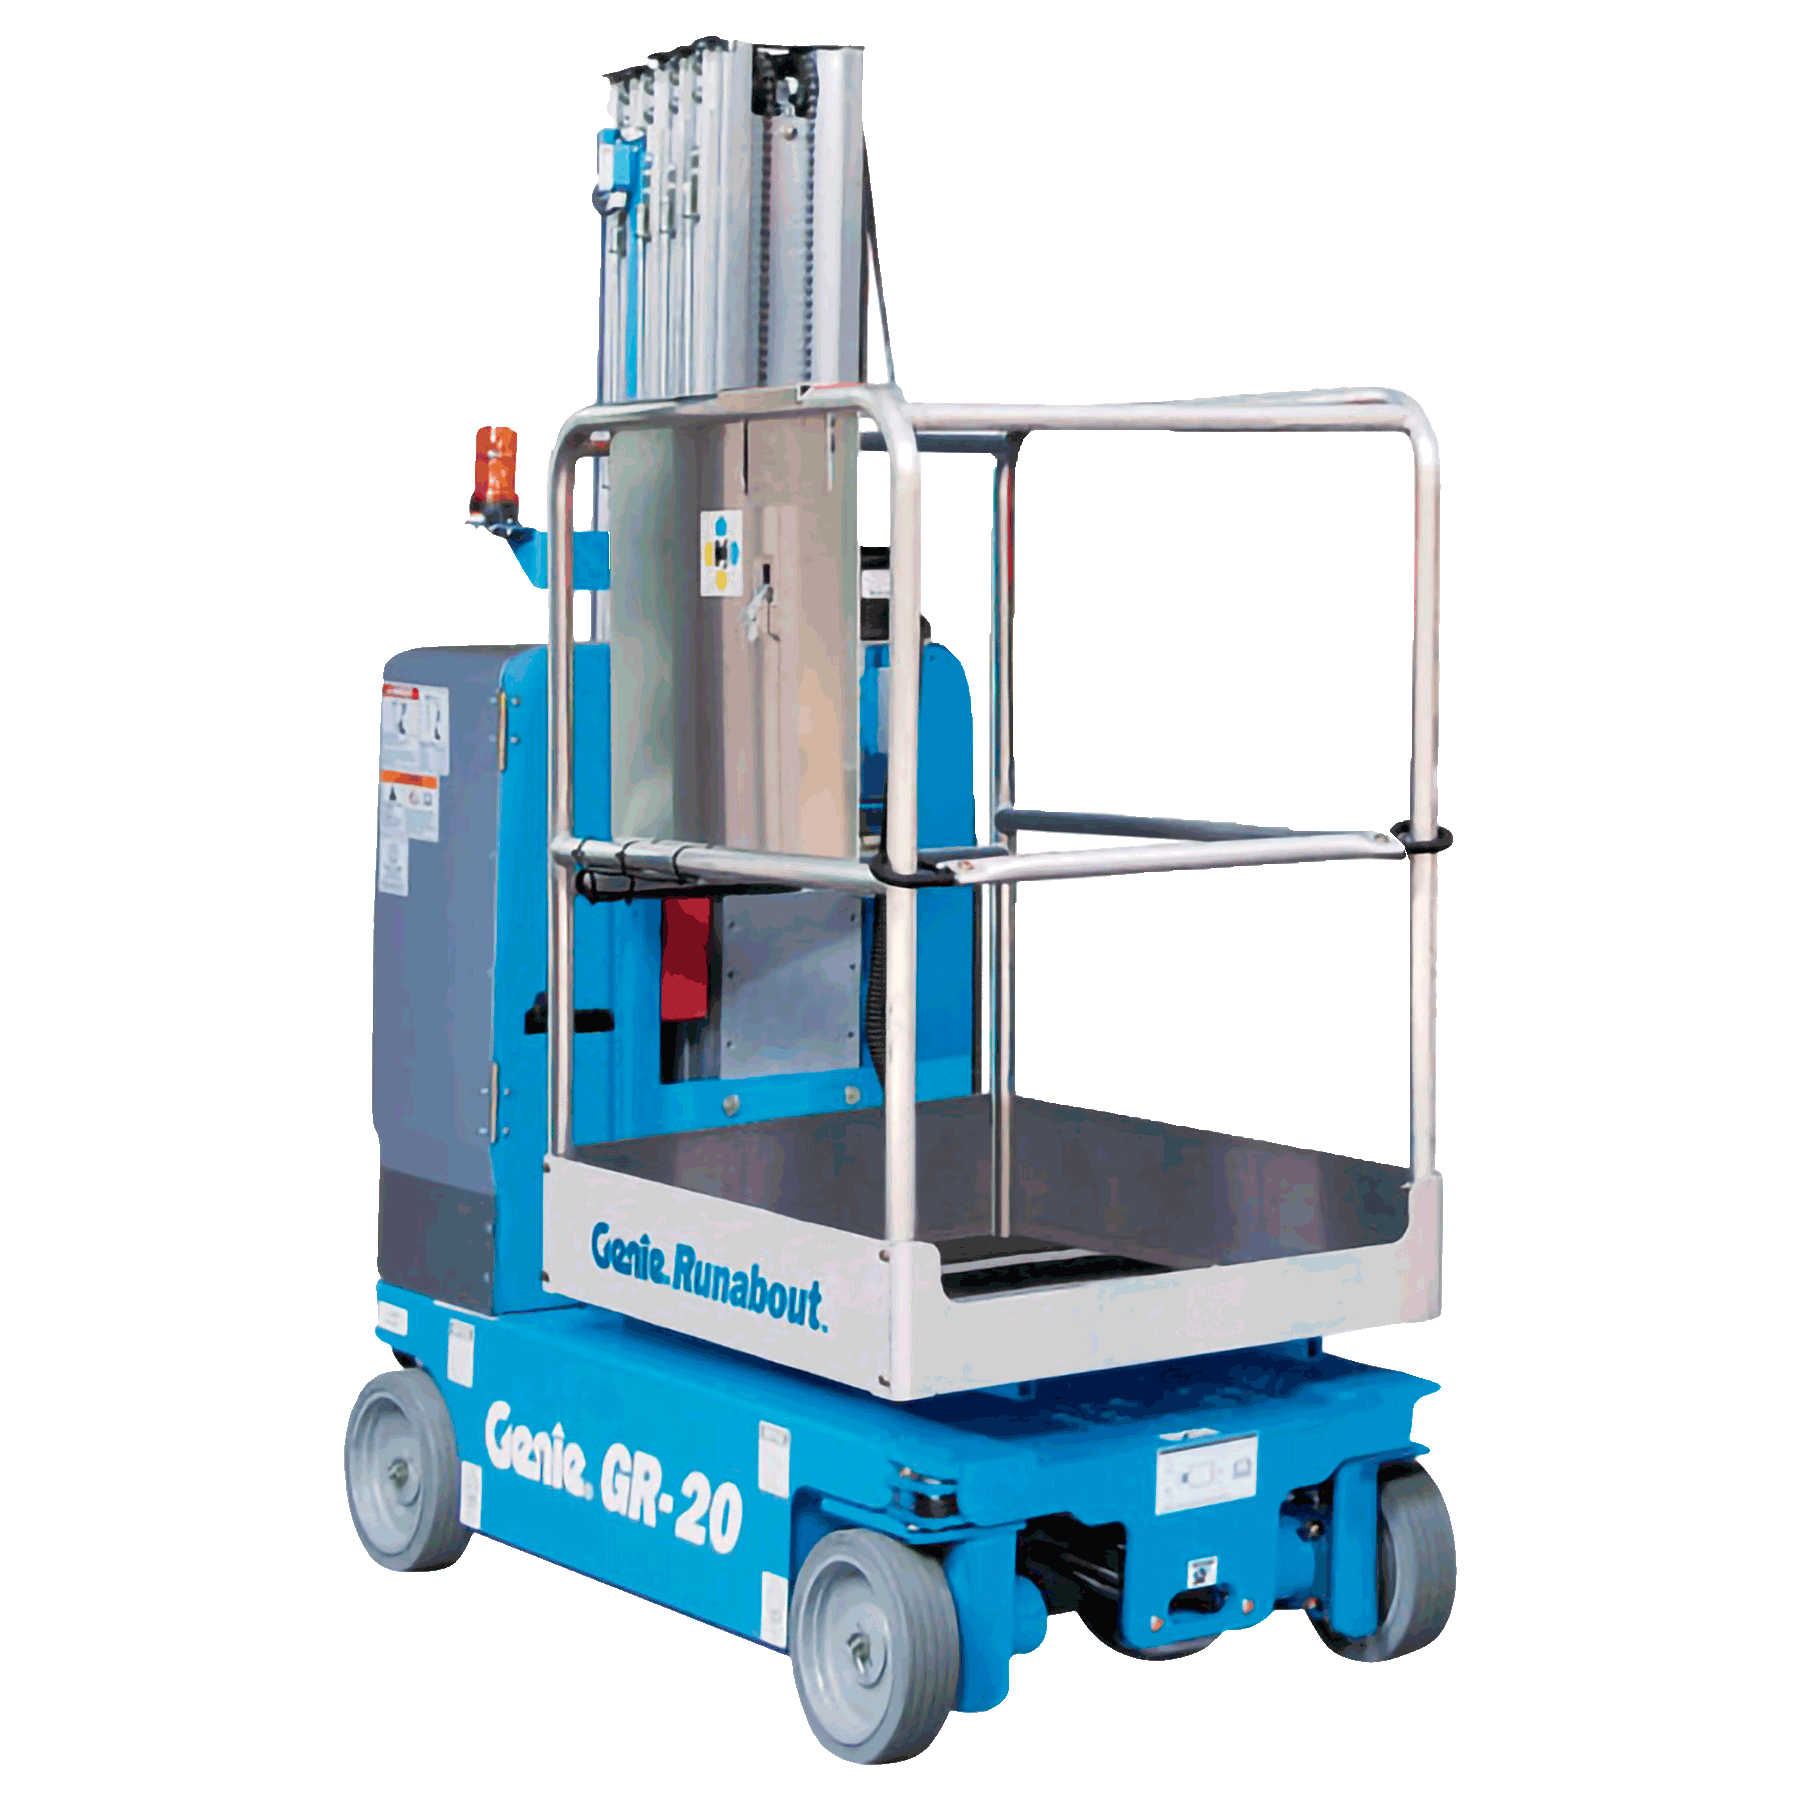 Lift battery 20ft self-propelled